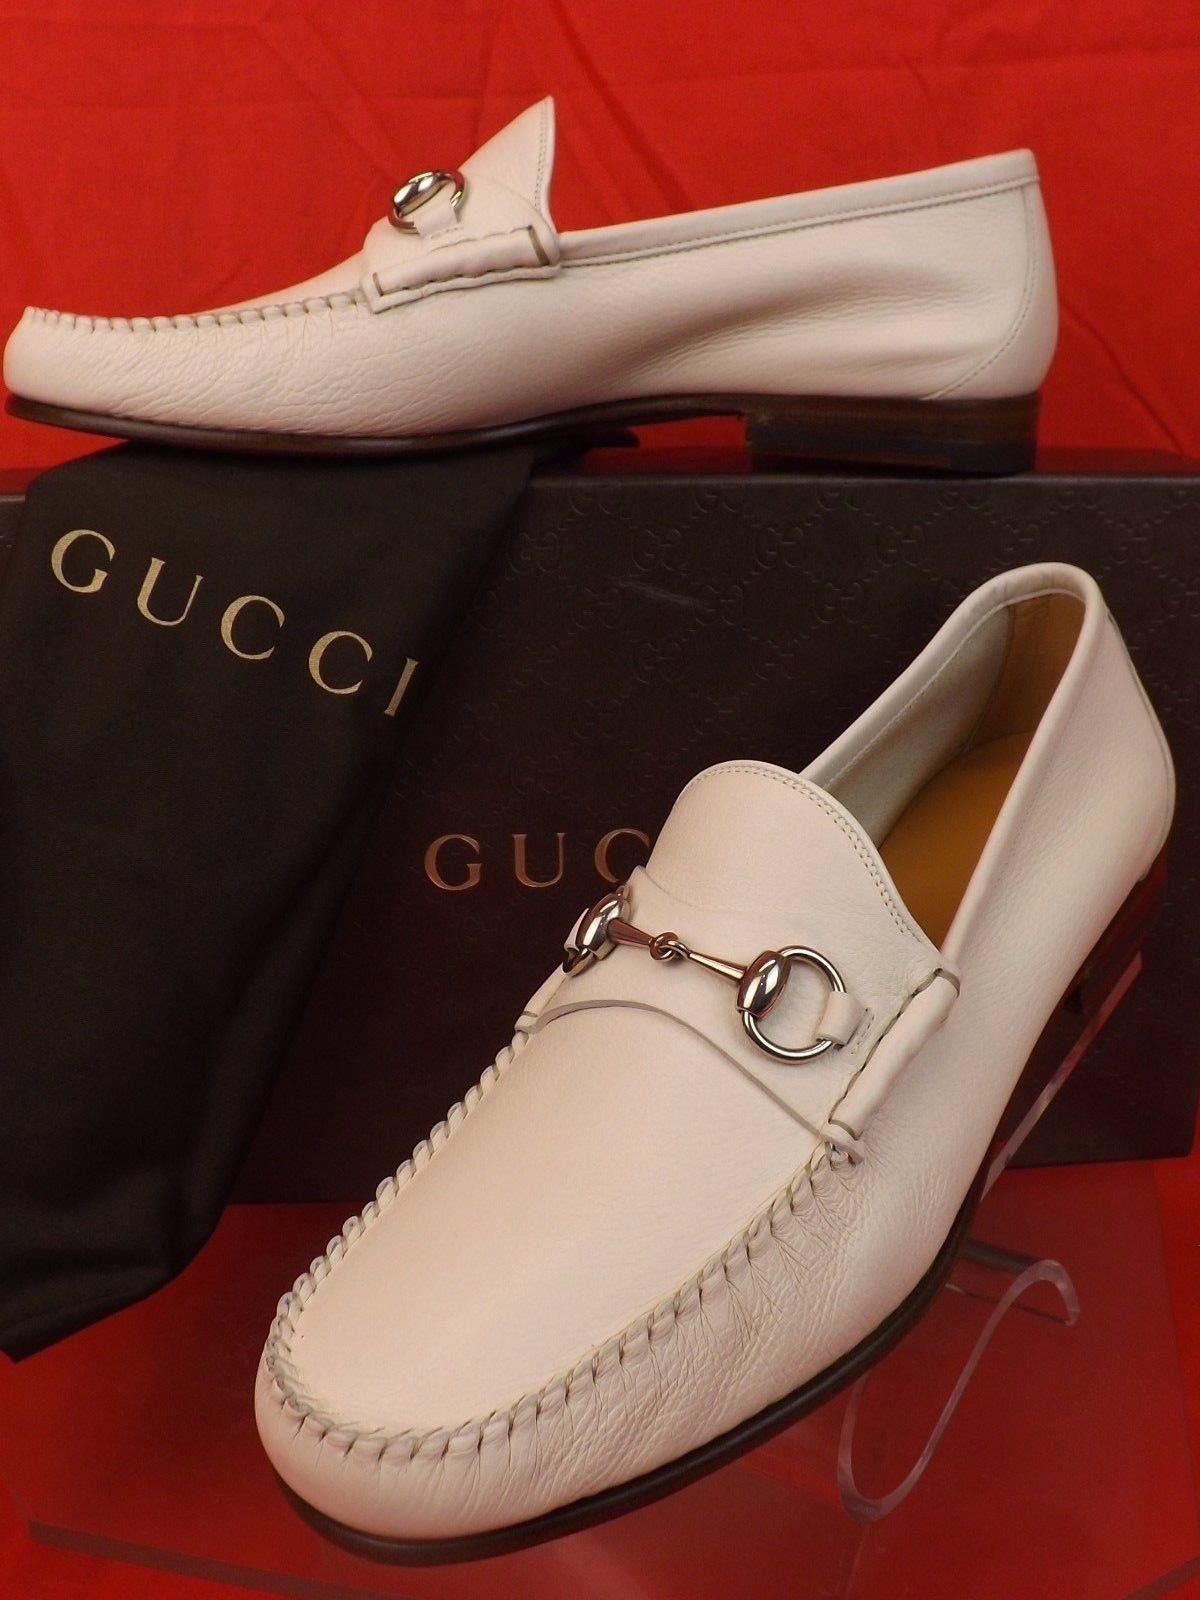 Gucci Mystic-white Horsebit Men's Leather Silver Loafers 9.5 10.5 #367926  Shoes ...